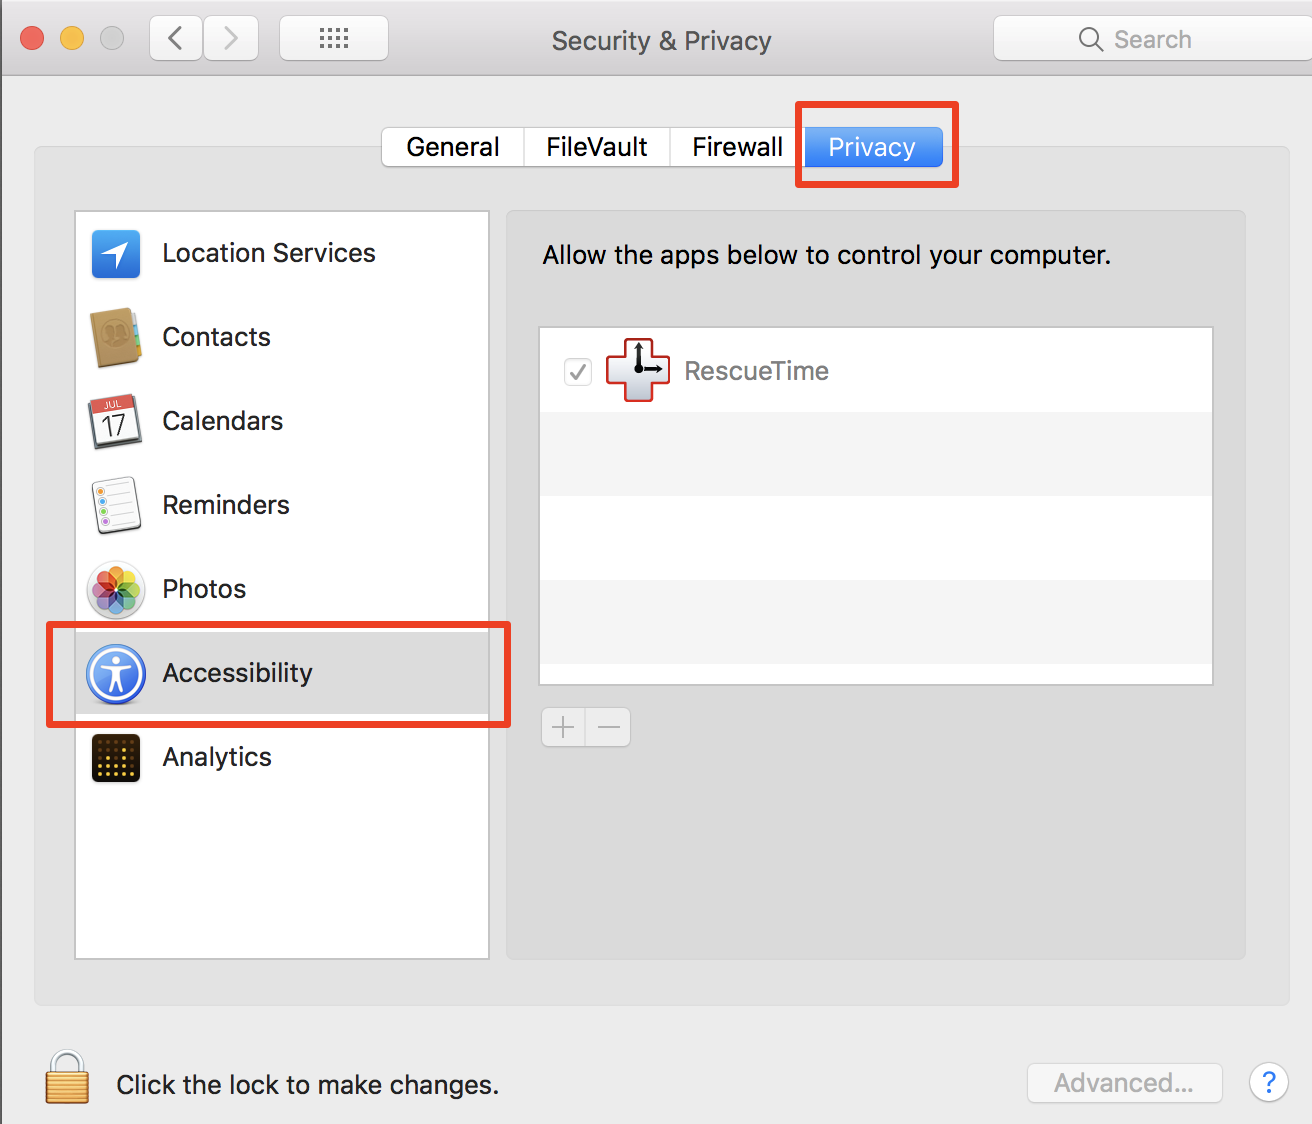 How do I enable Accessibility permissions on Mac OS/X